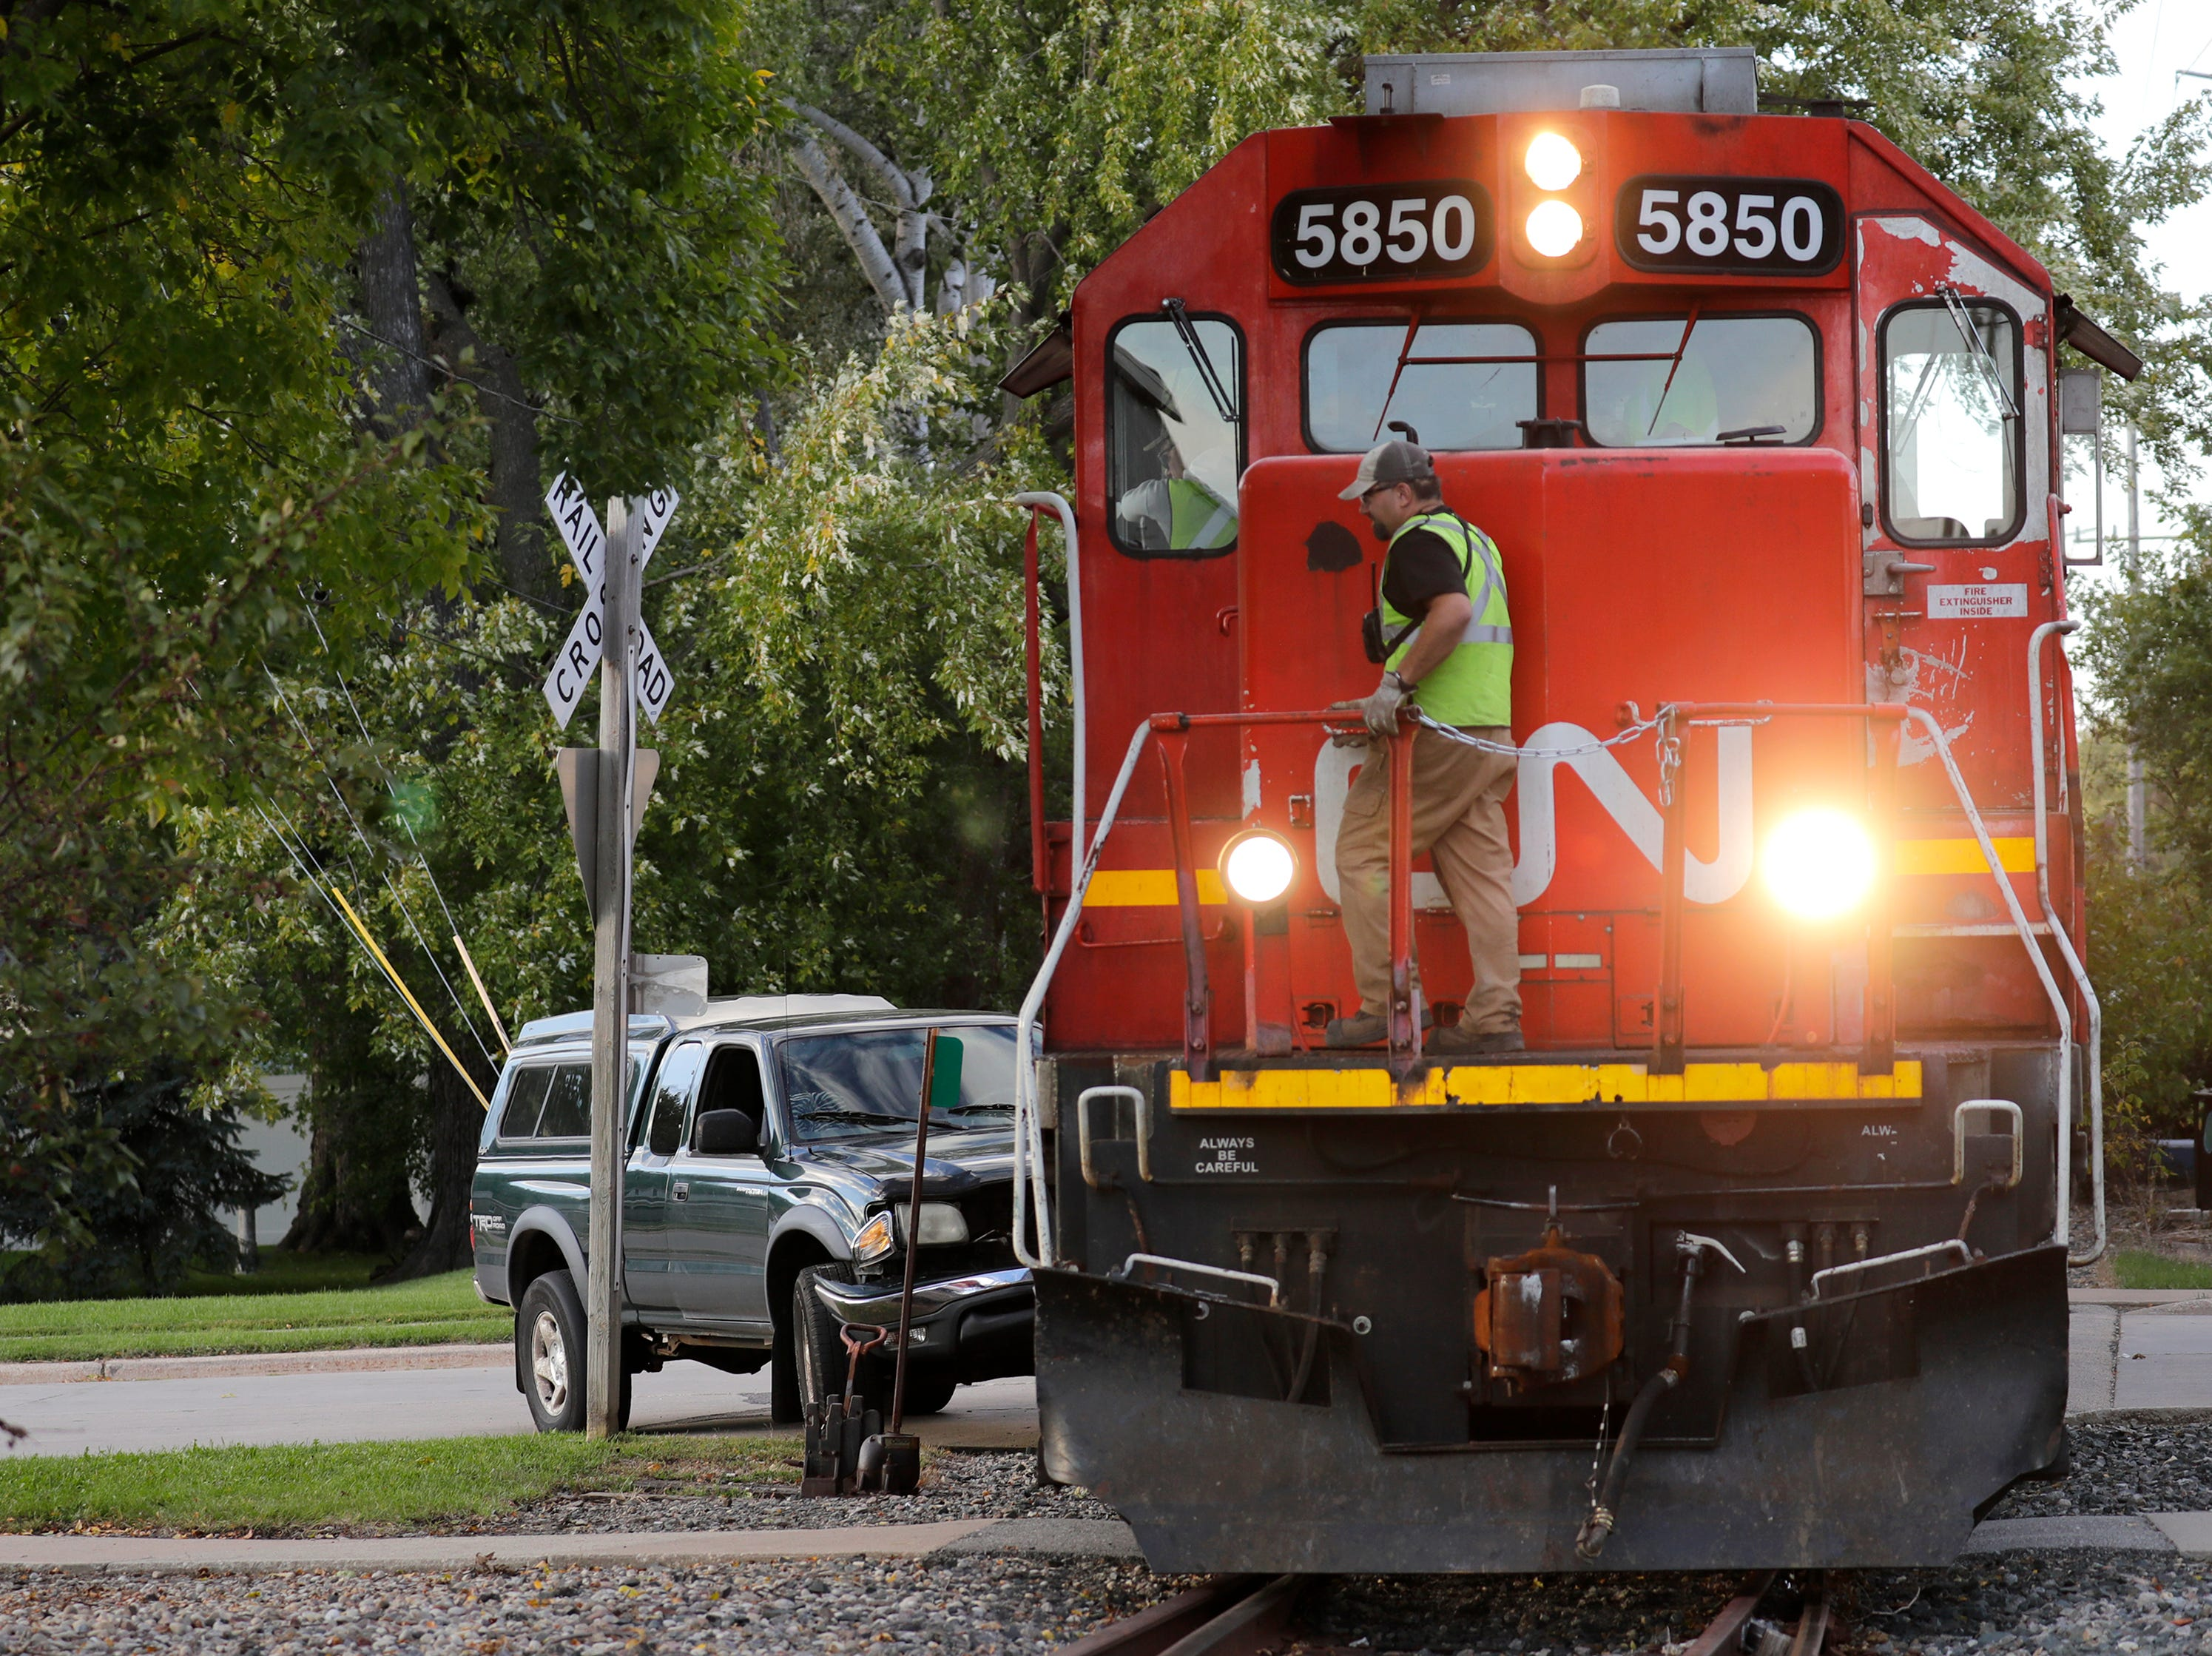 A Canadian National employee investigates the scene of a  truck versus train crash Wednesday, Sept. 26, 2018, Fire Station 40 in Fox Crossing, Wis. Dan Powers/USA TODAY NETWORK-Wisconsin